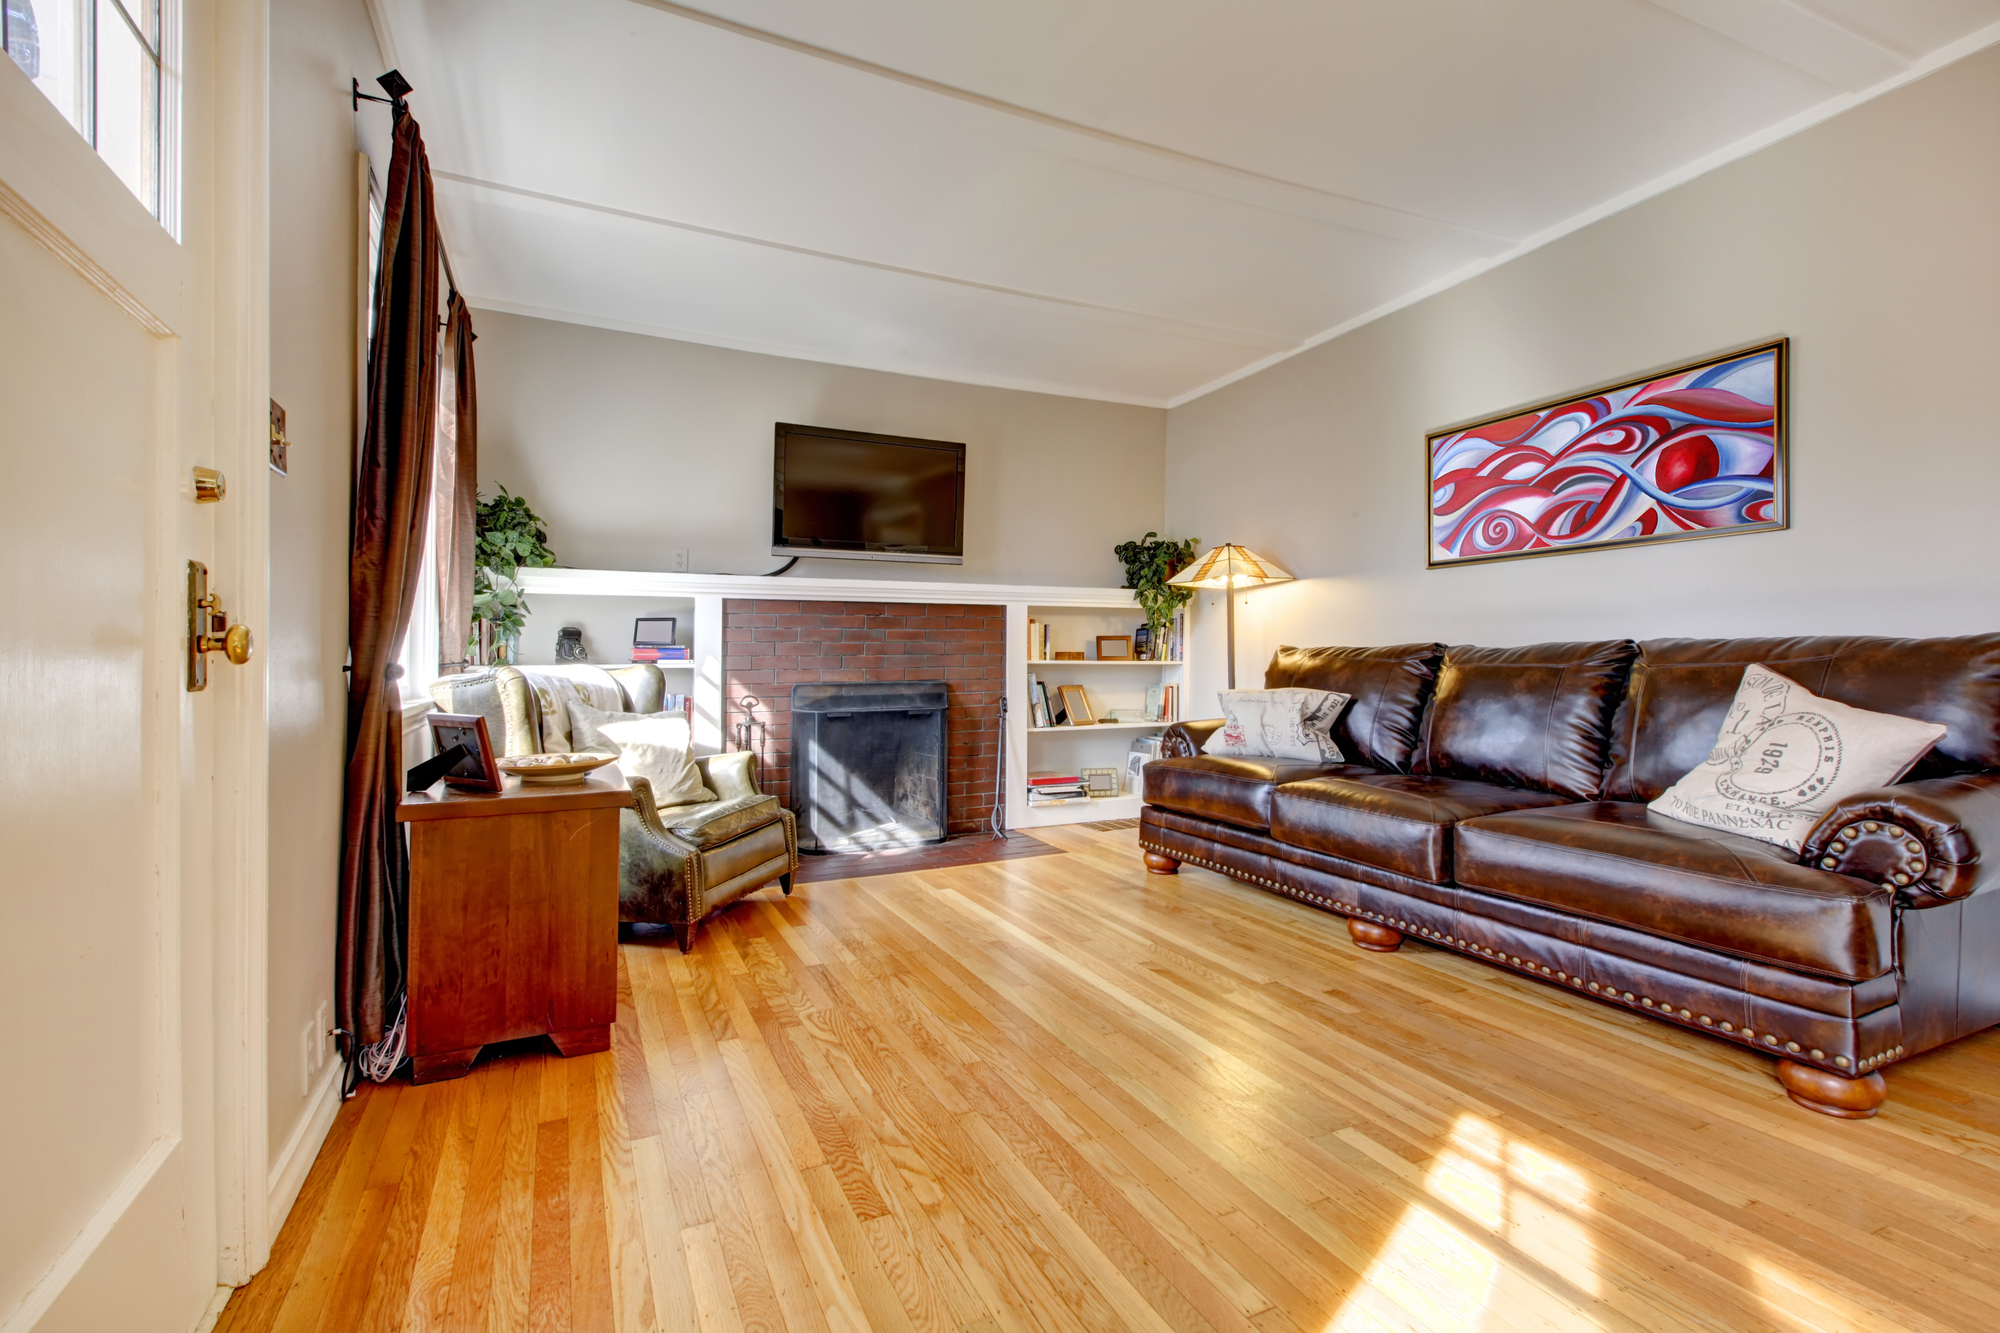 Wood Floor Leather Couch.jpg